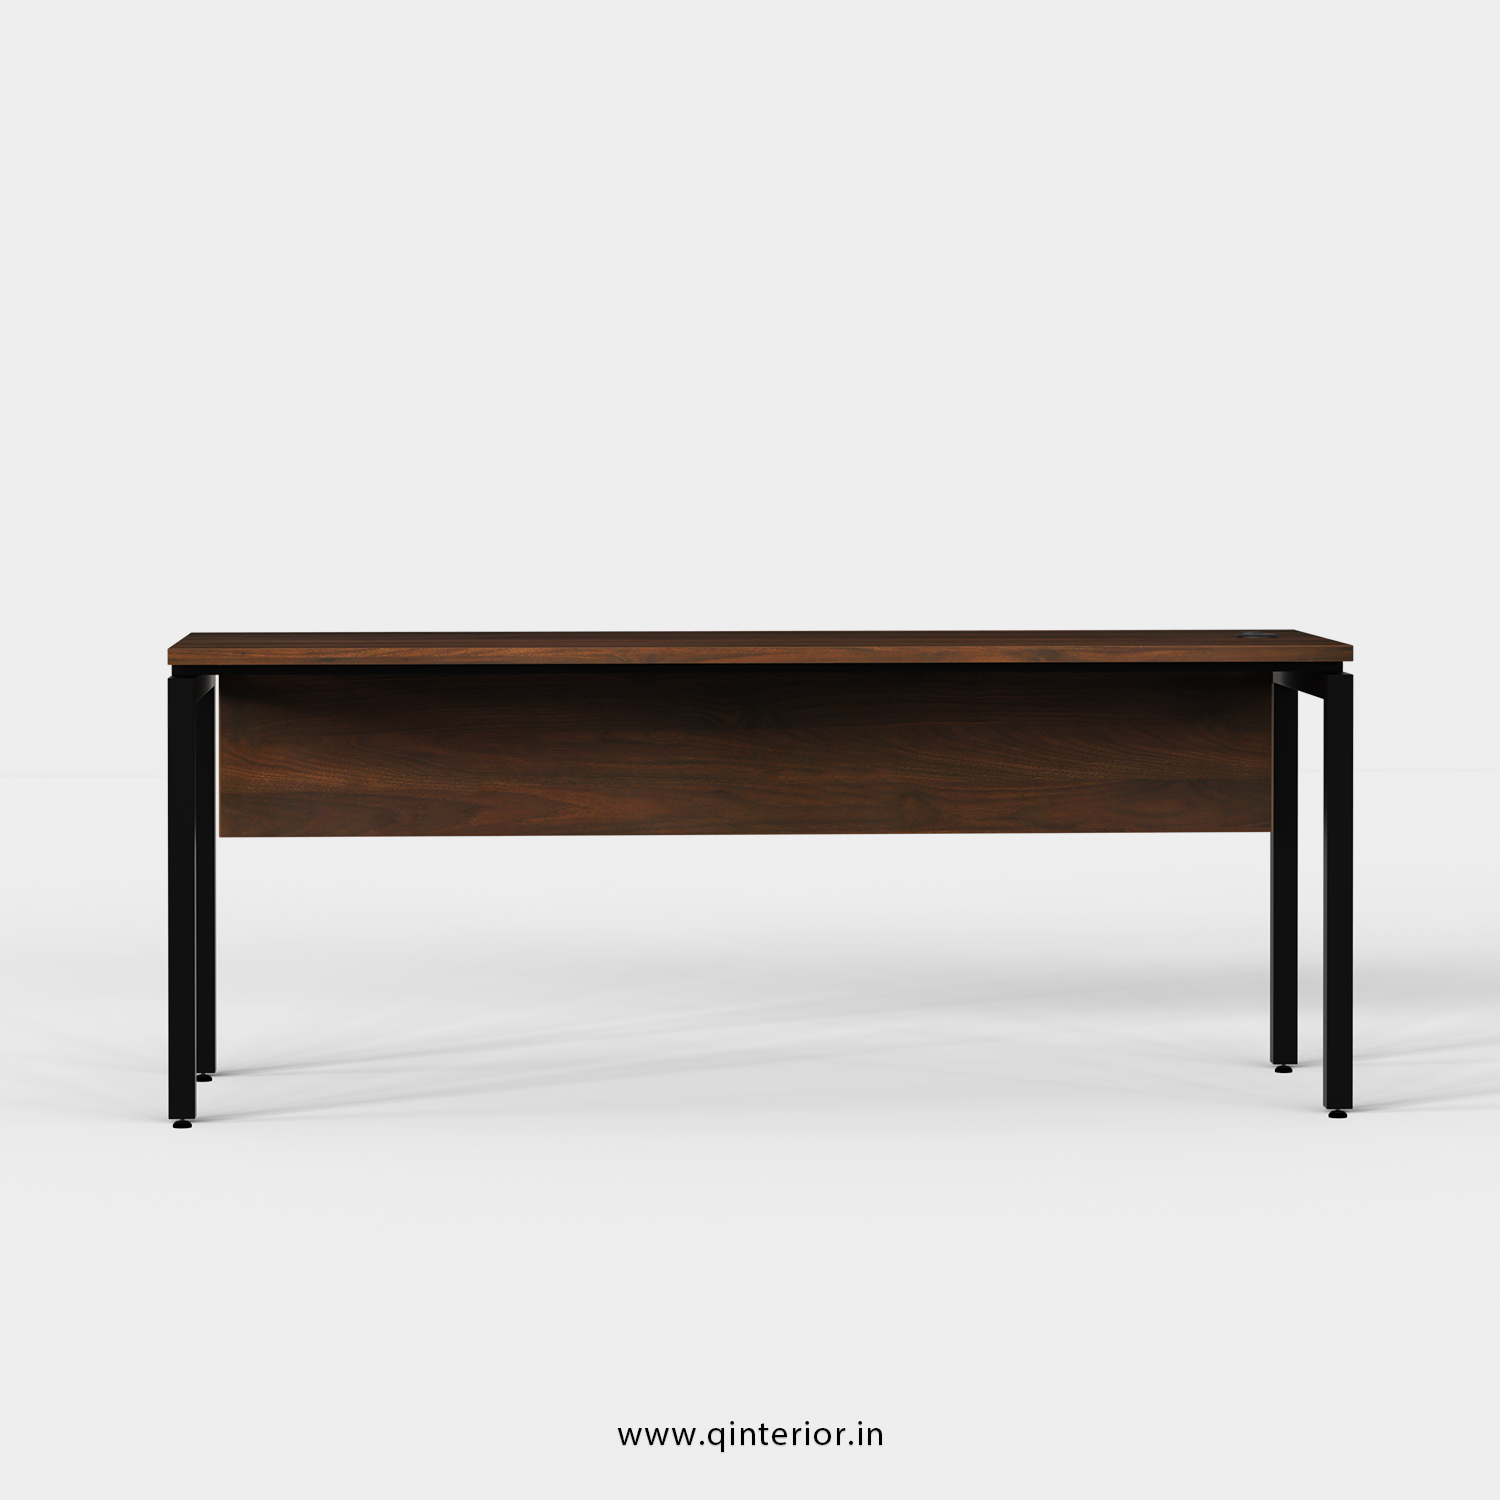 Montel Executive Table in Walnut Finish - OET001 C1